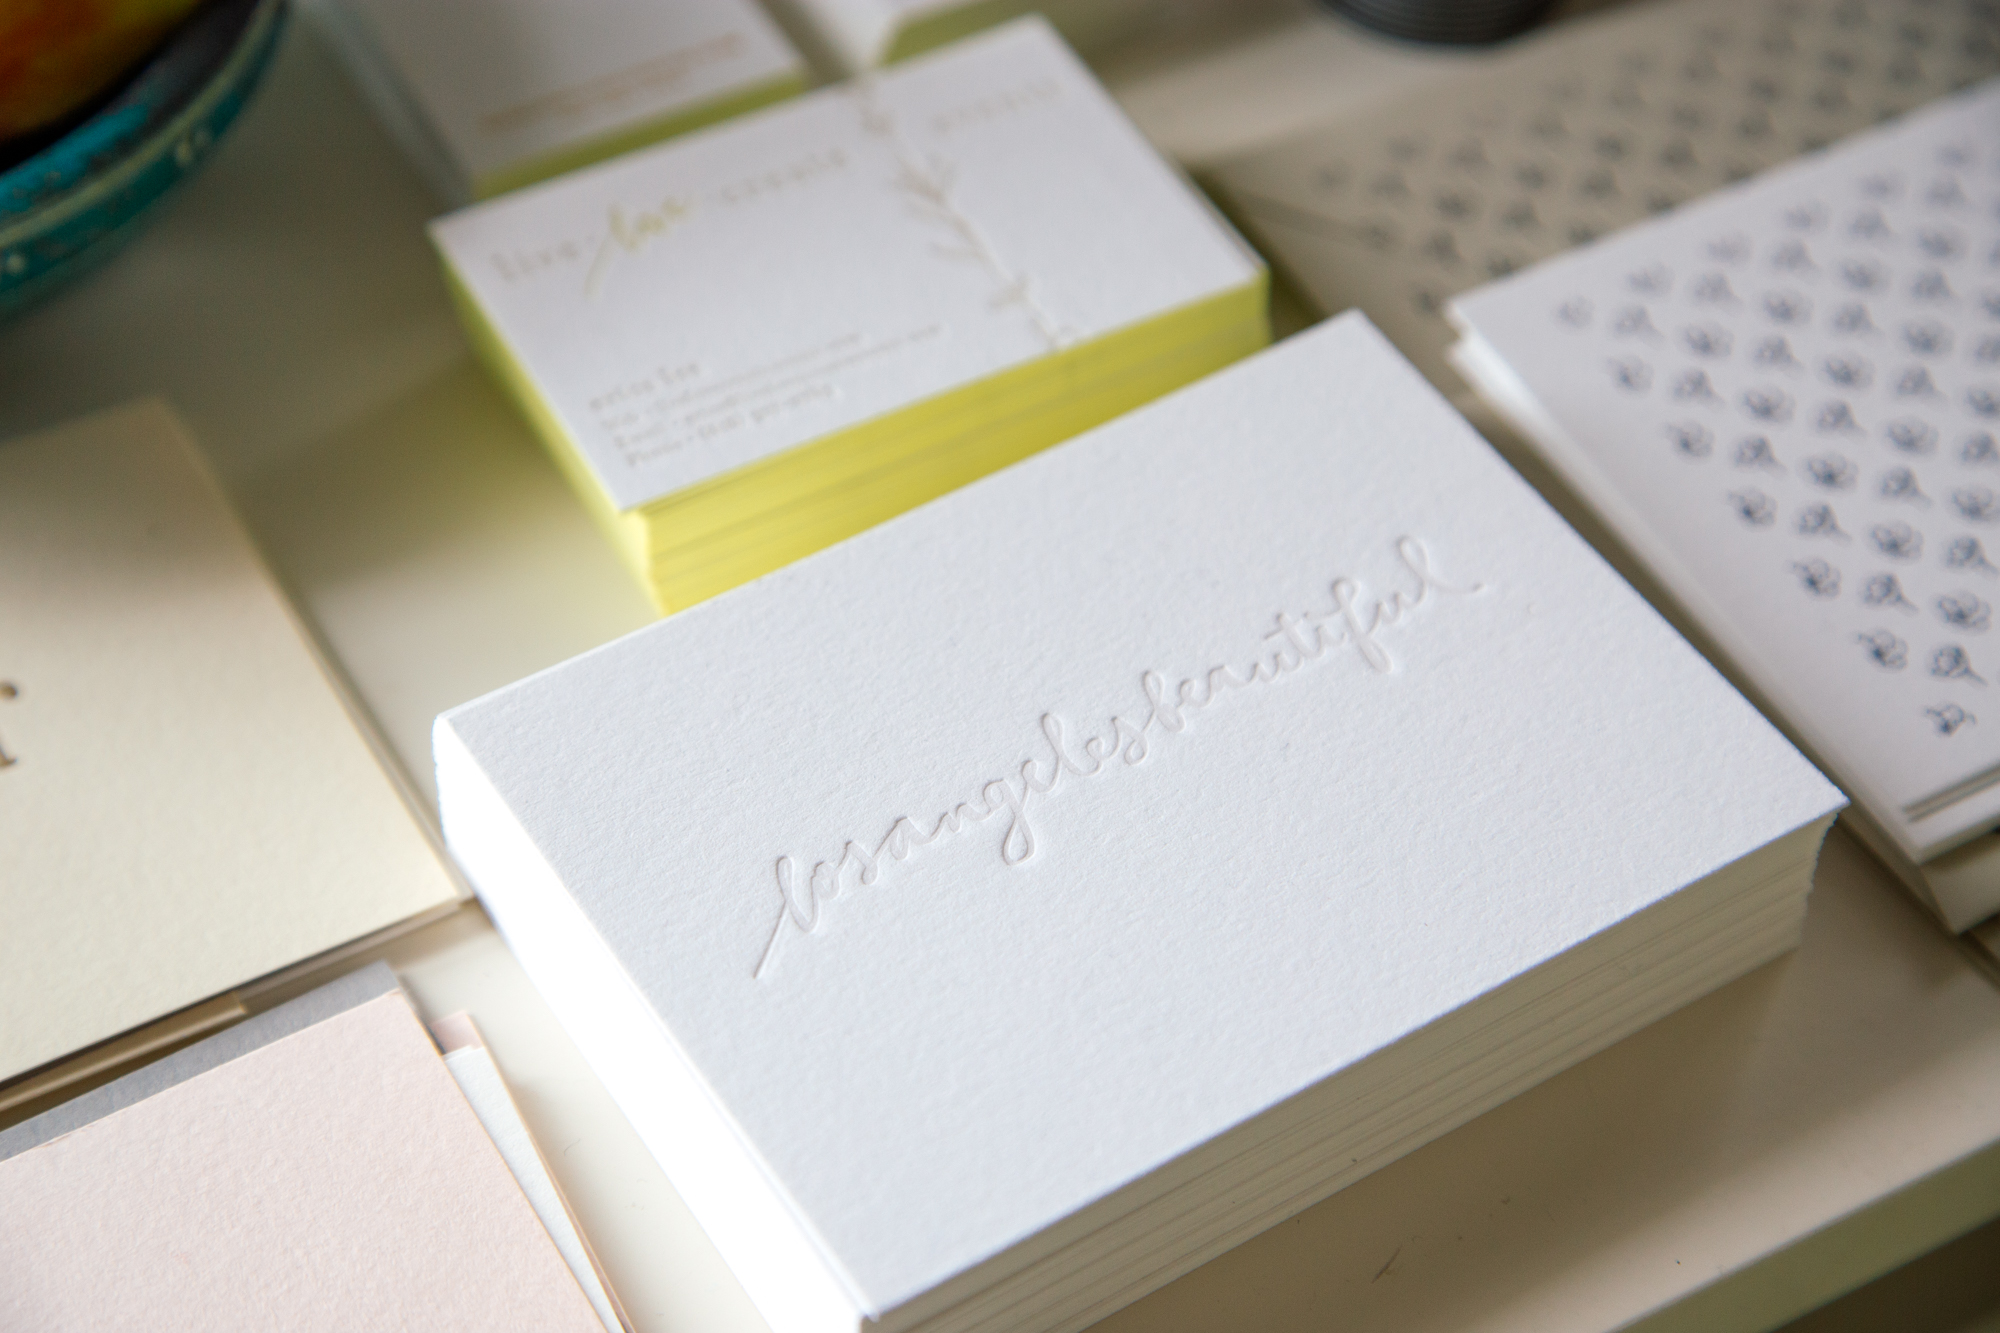 Paper & Type / styled by Justina Blakeney, photographed by Dabito.